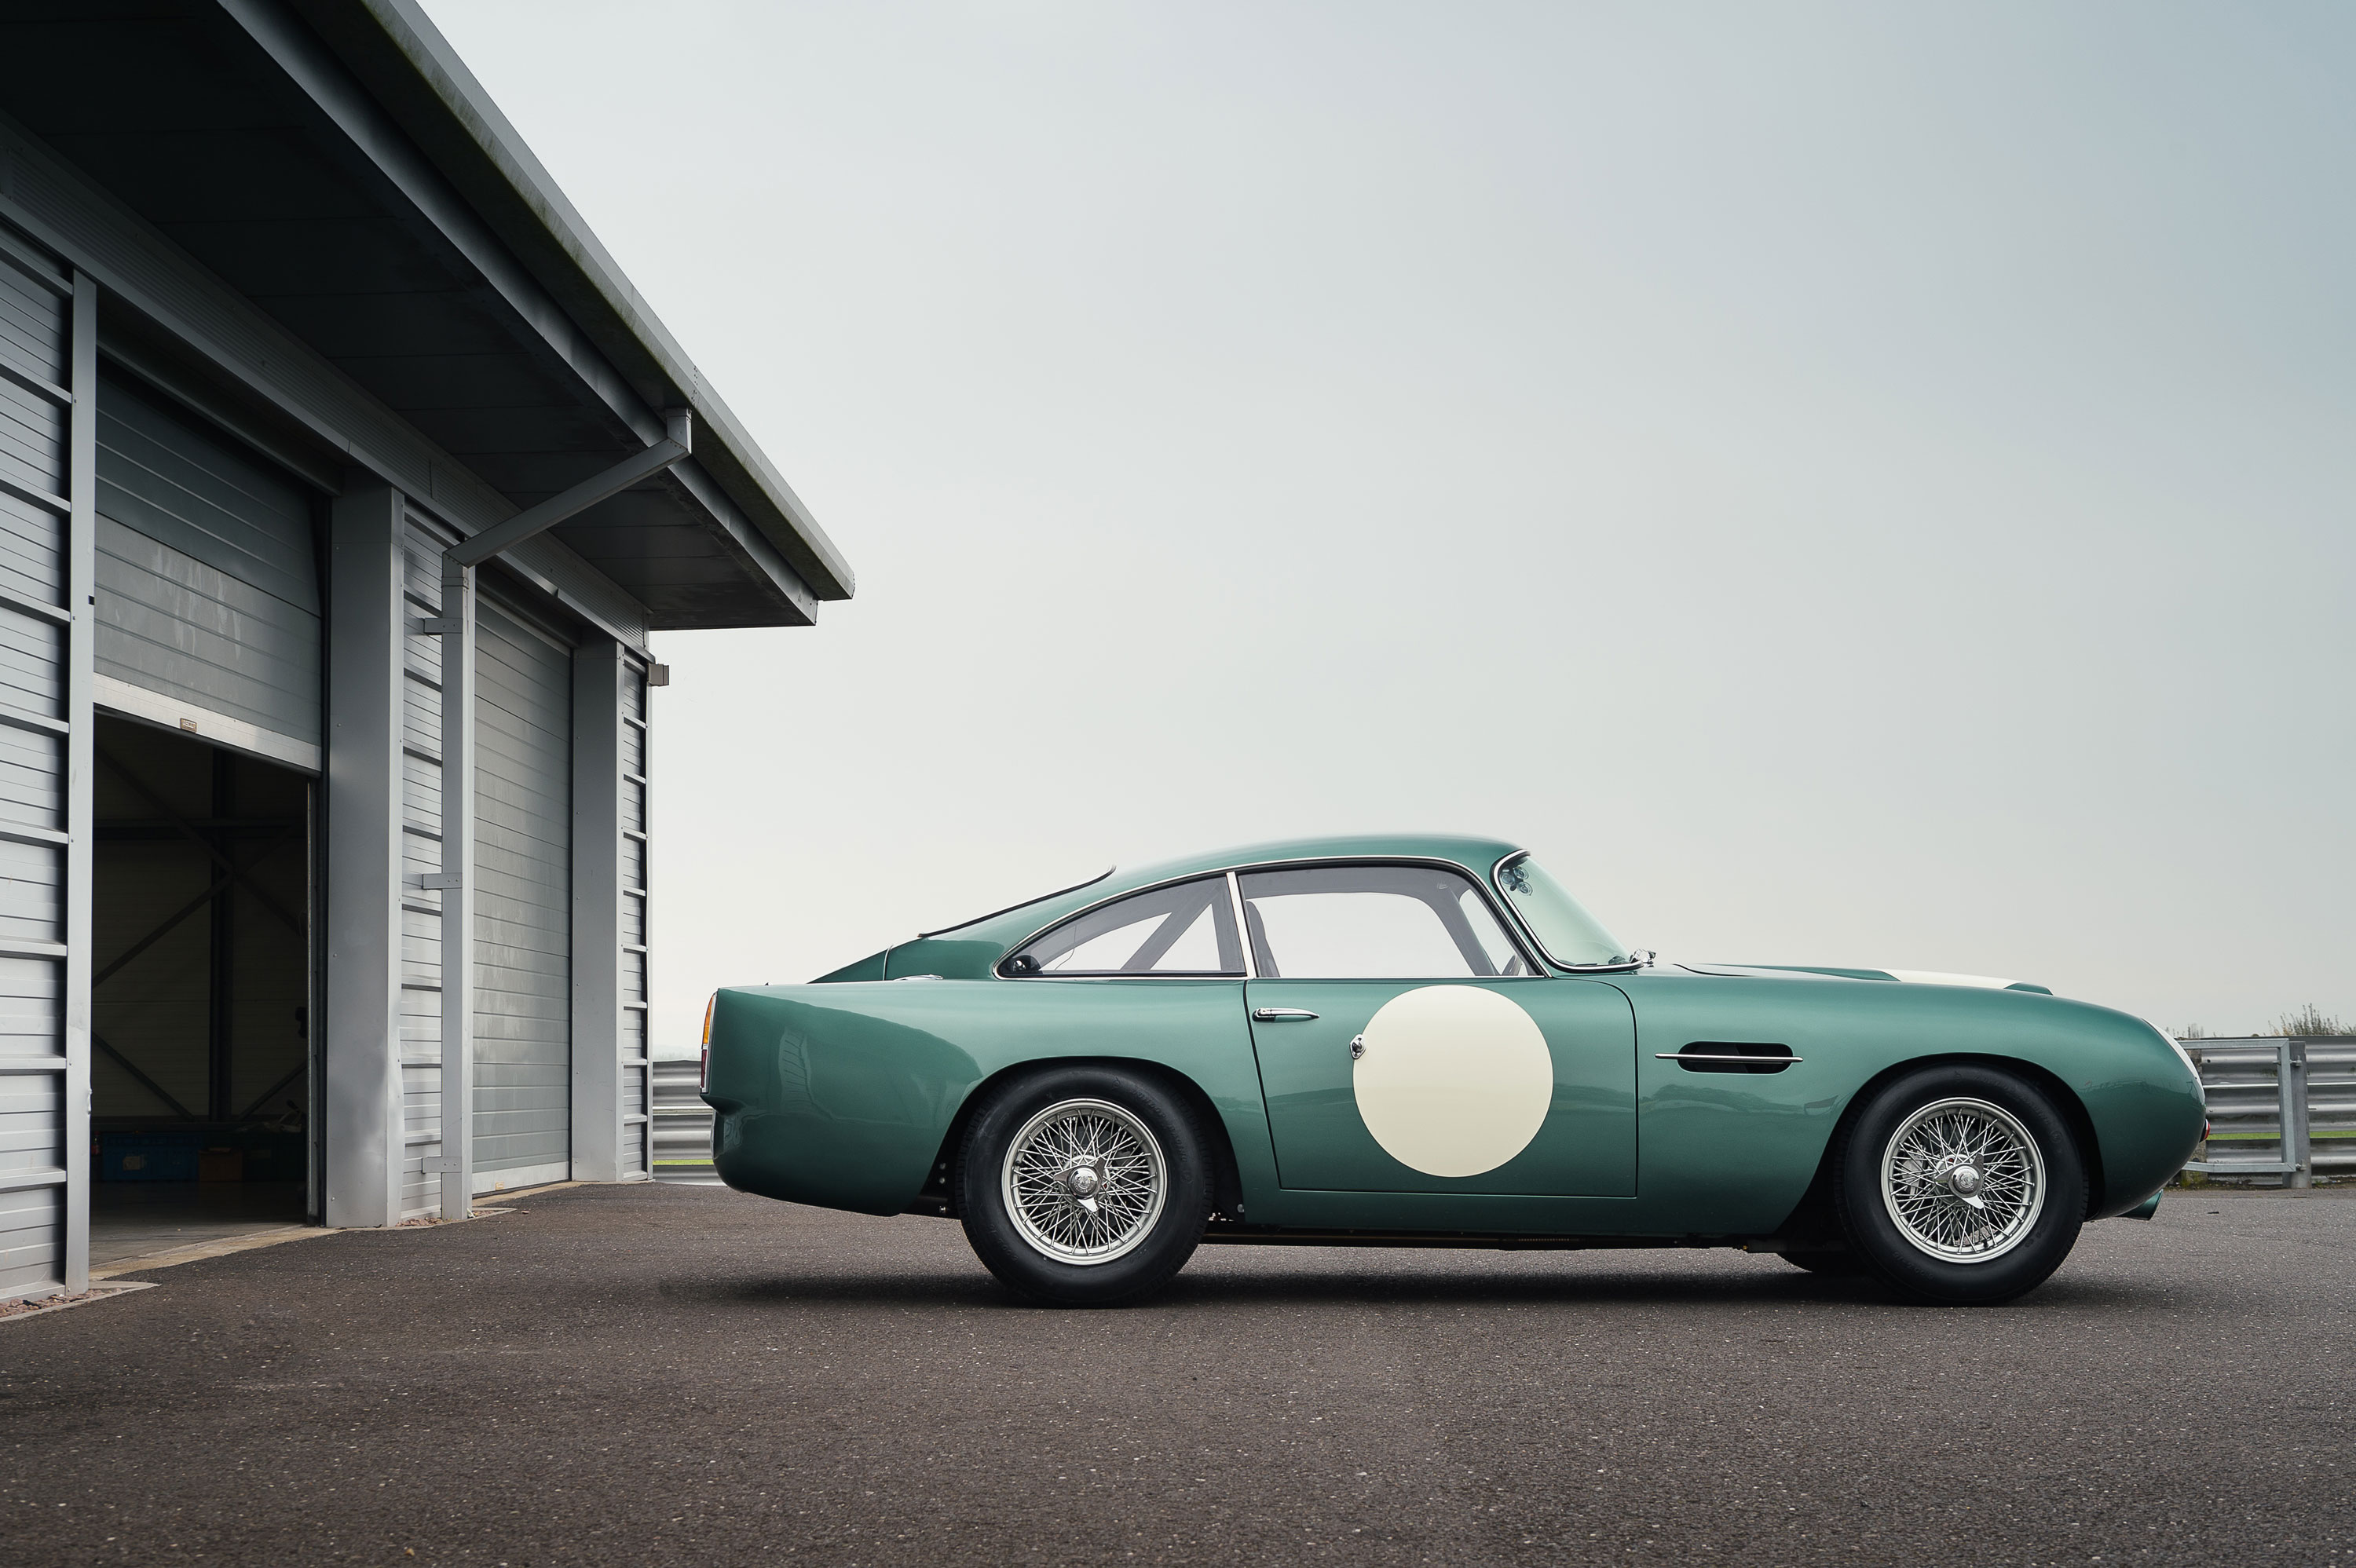 1959 Aston Martin DB4 GT profile by the garage